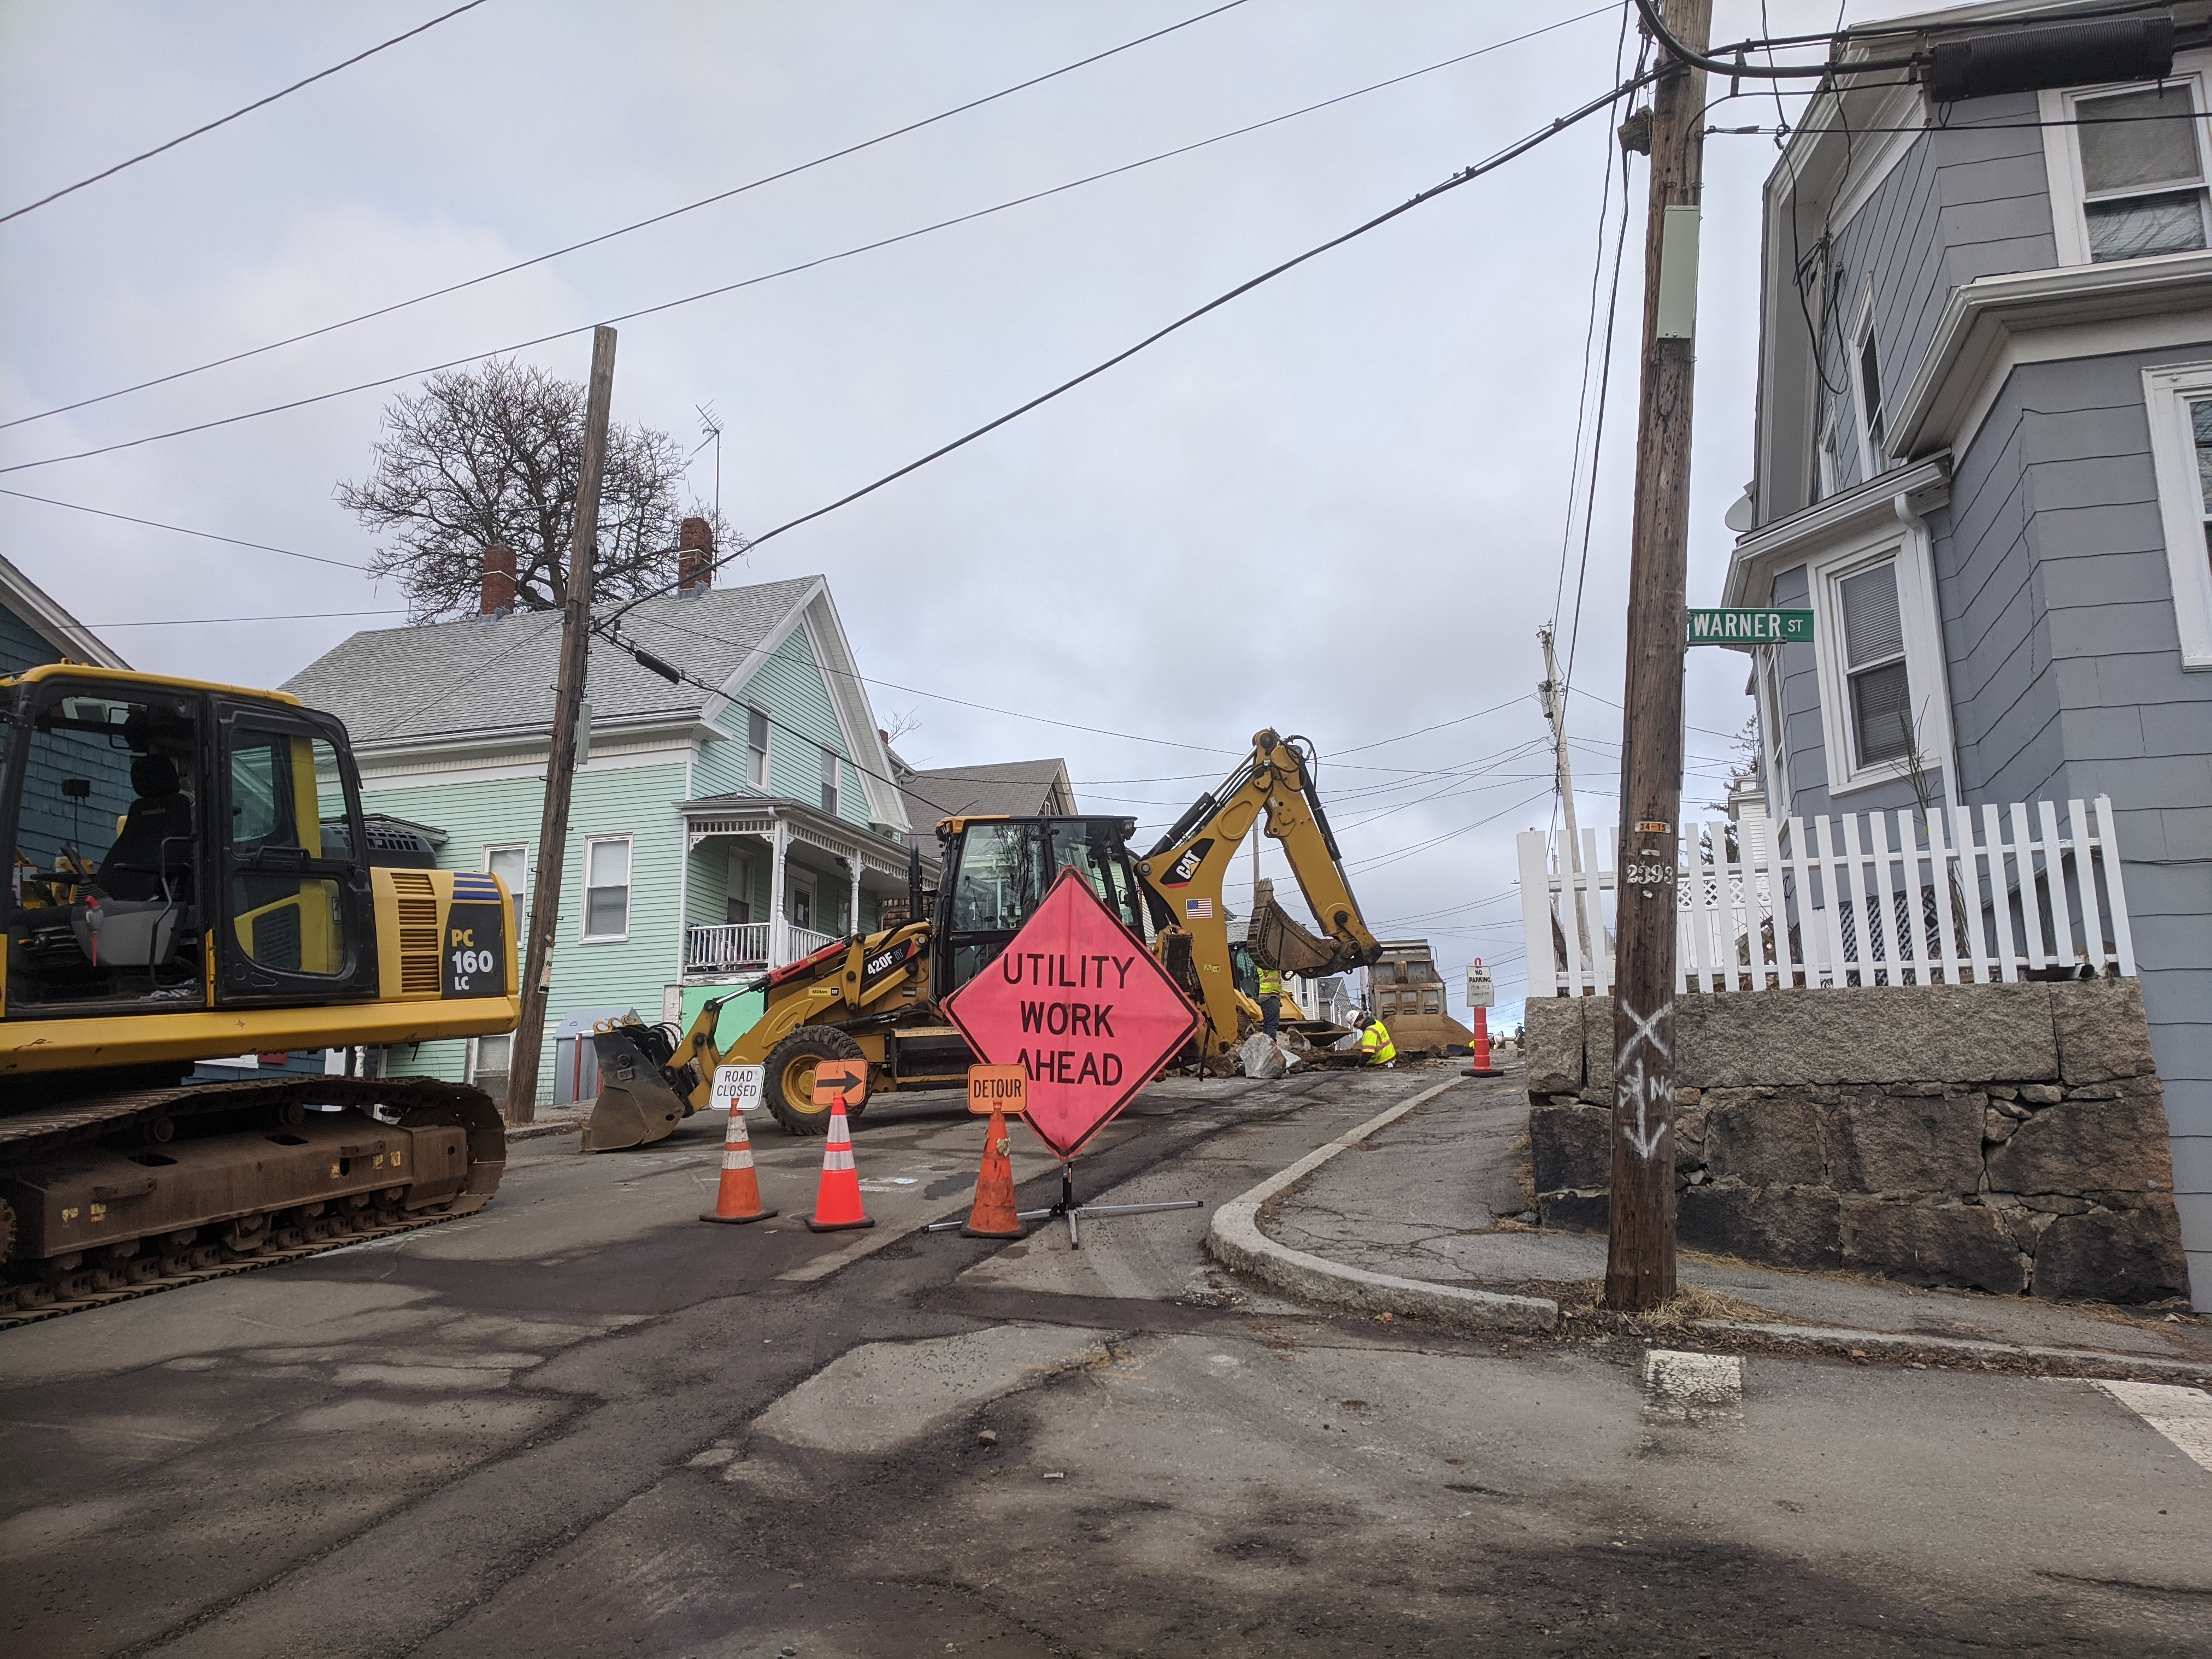 Millet and Warner Streets_thx Mayor, DPW getting $ past finish line _3 million all grant funded_ MassWorks_ infrastructure improvements_Gloucester MA_ photo © c ryan 2020 Jan 14.jpg